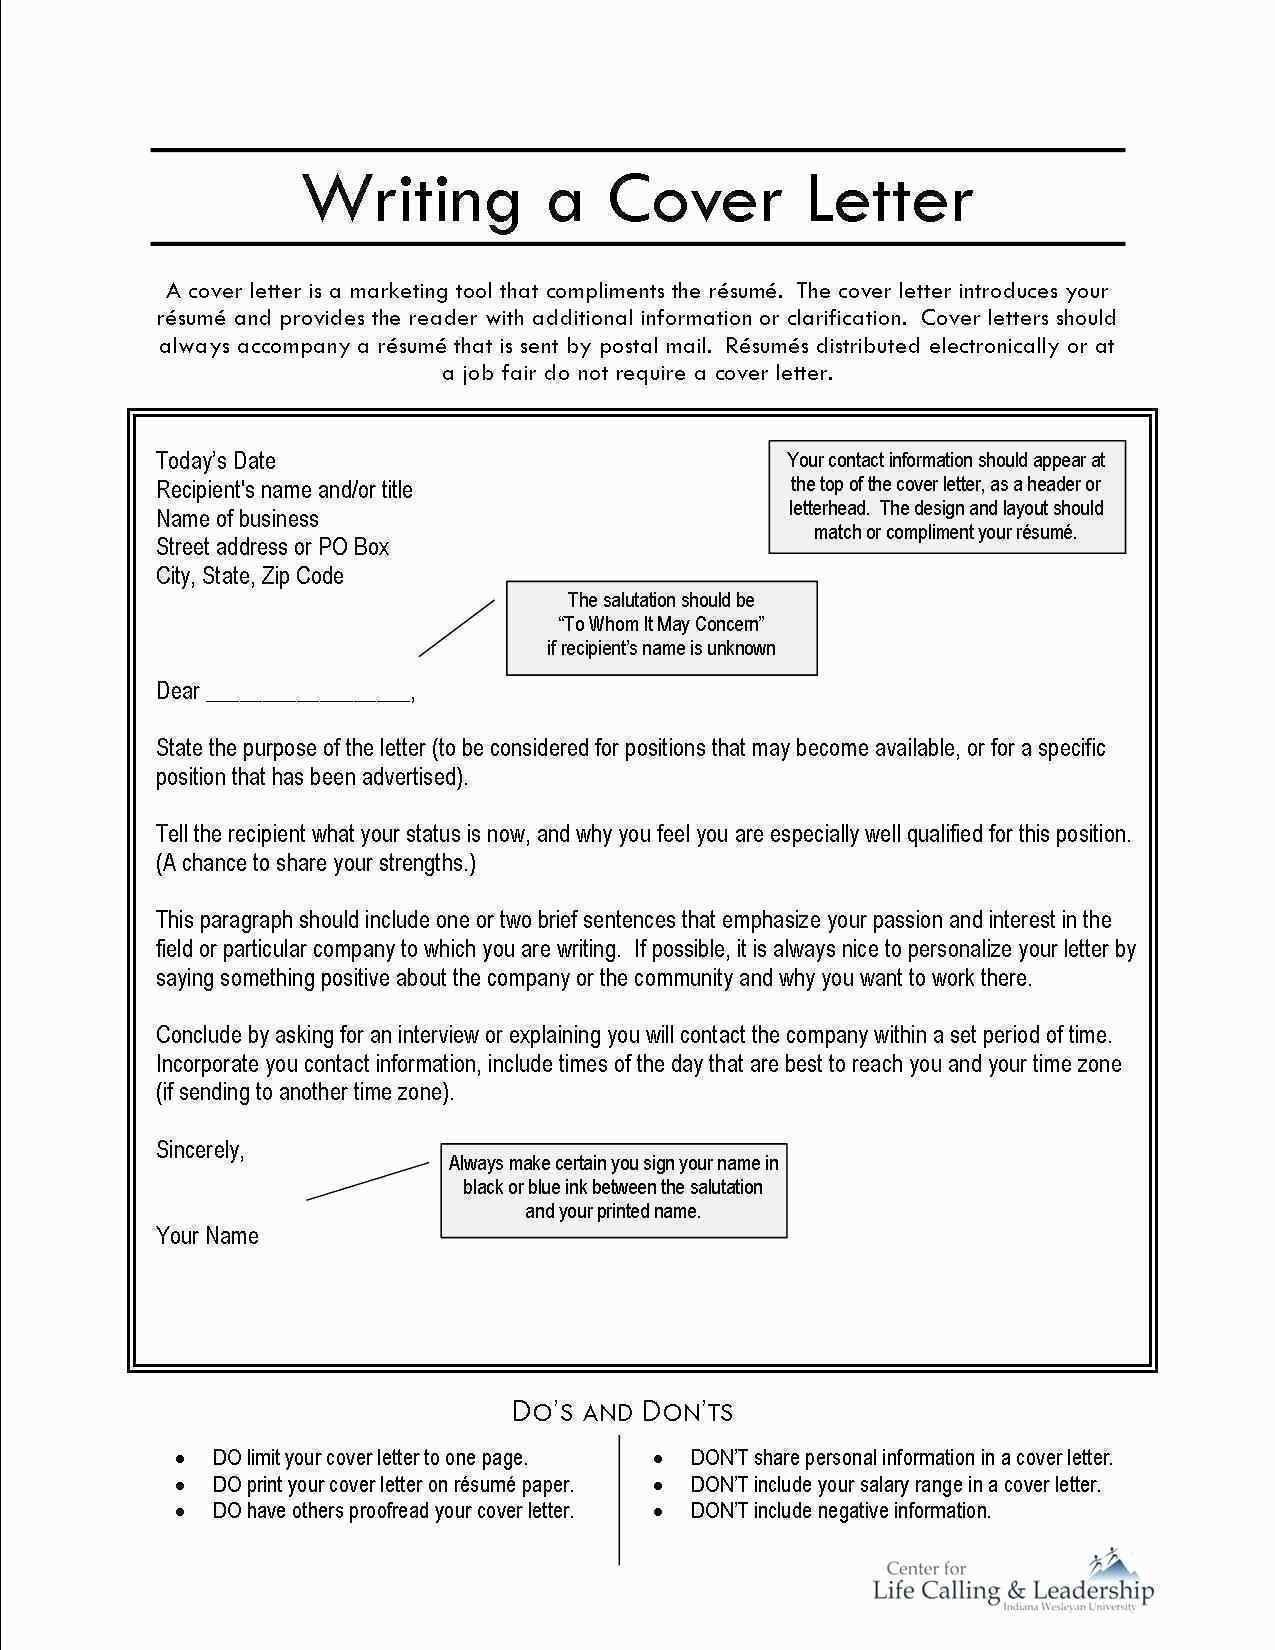 25 Cover Letter Opening In 2020 With Images Cover